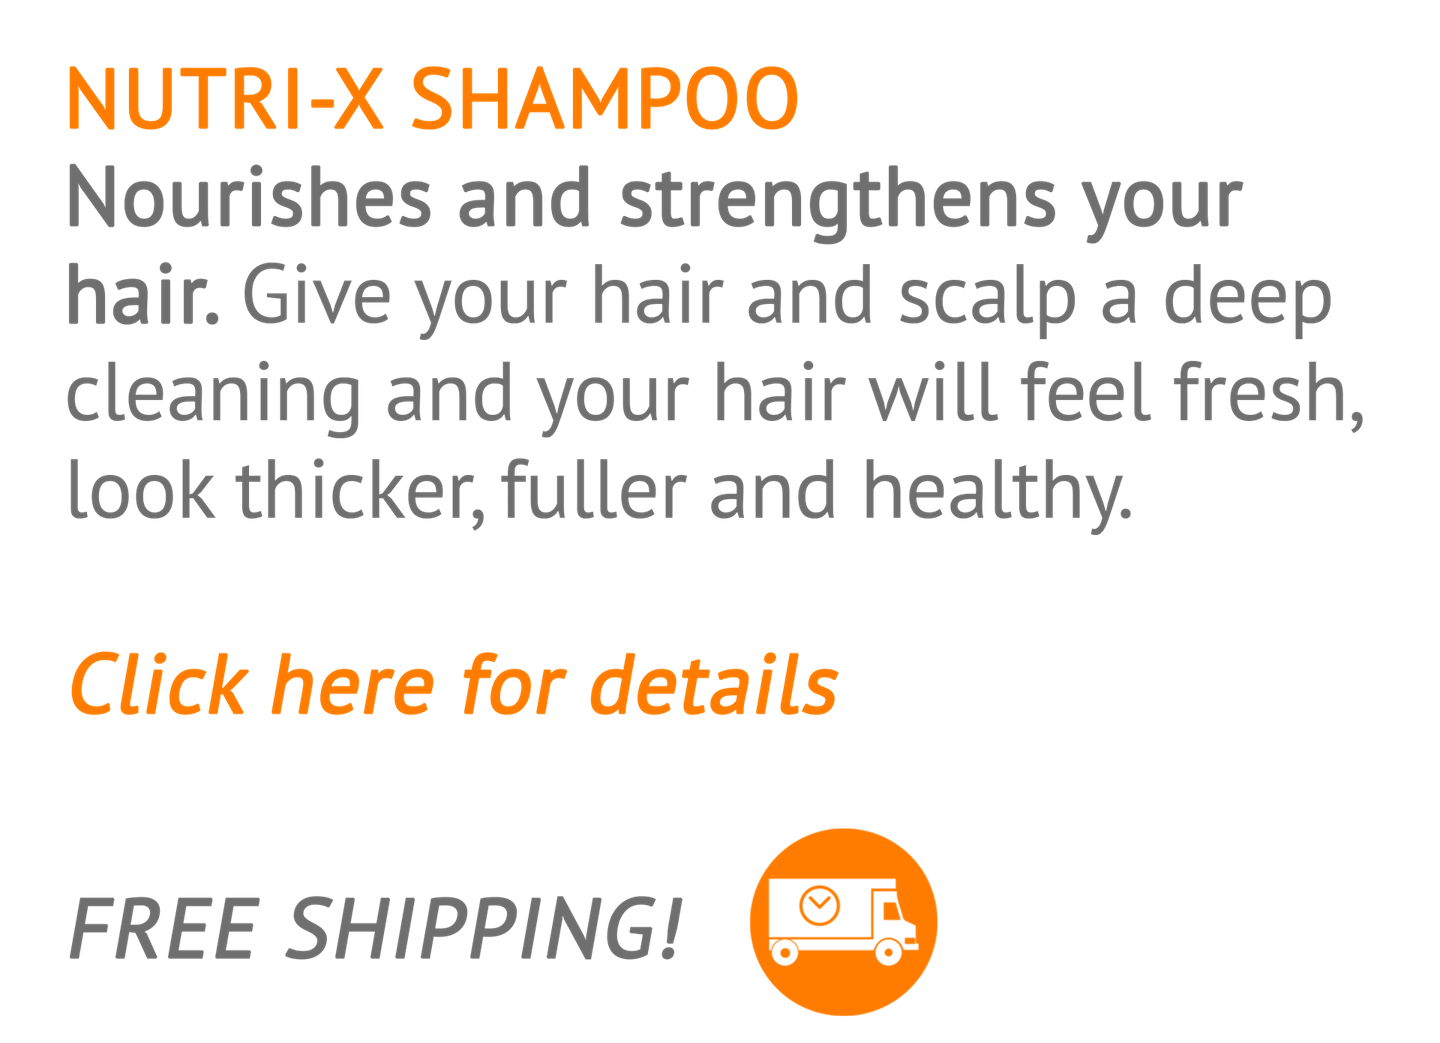 Nourishes and strengthens hair